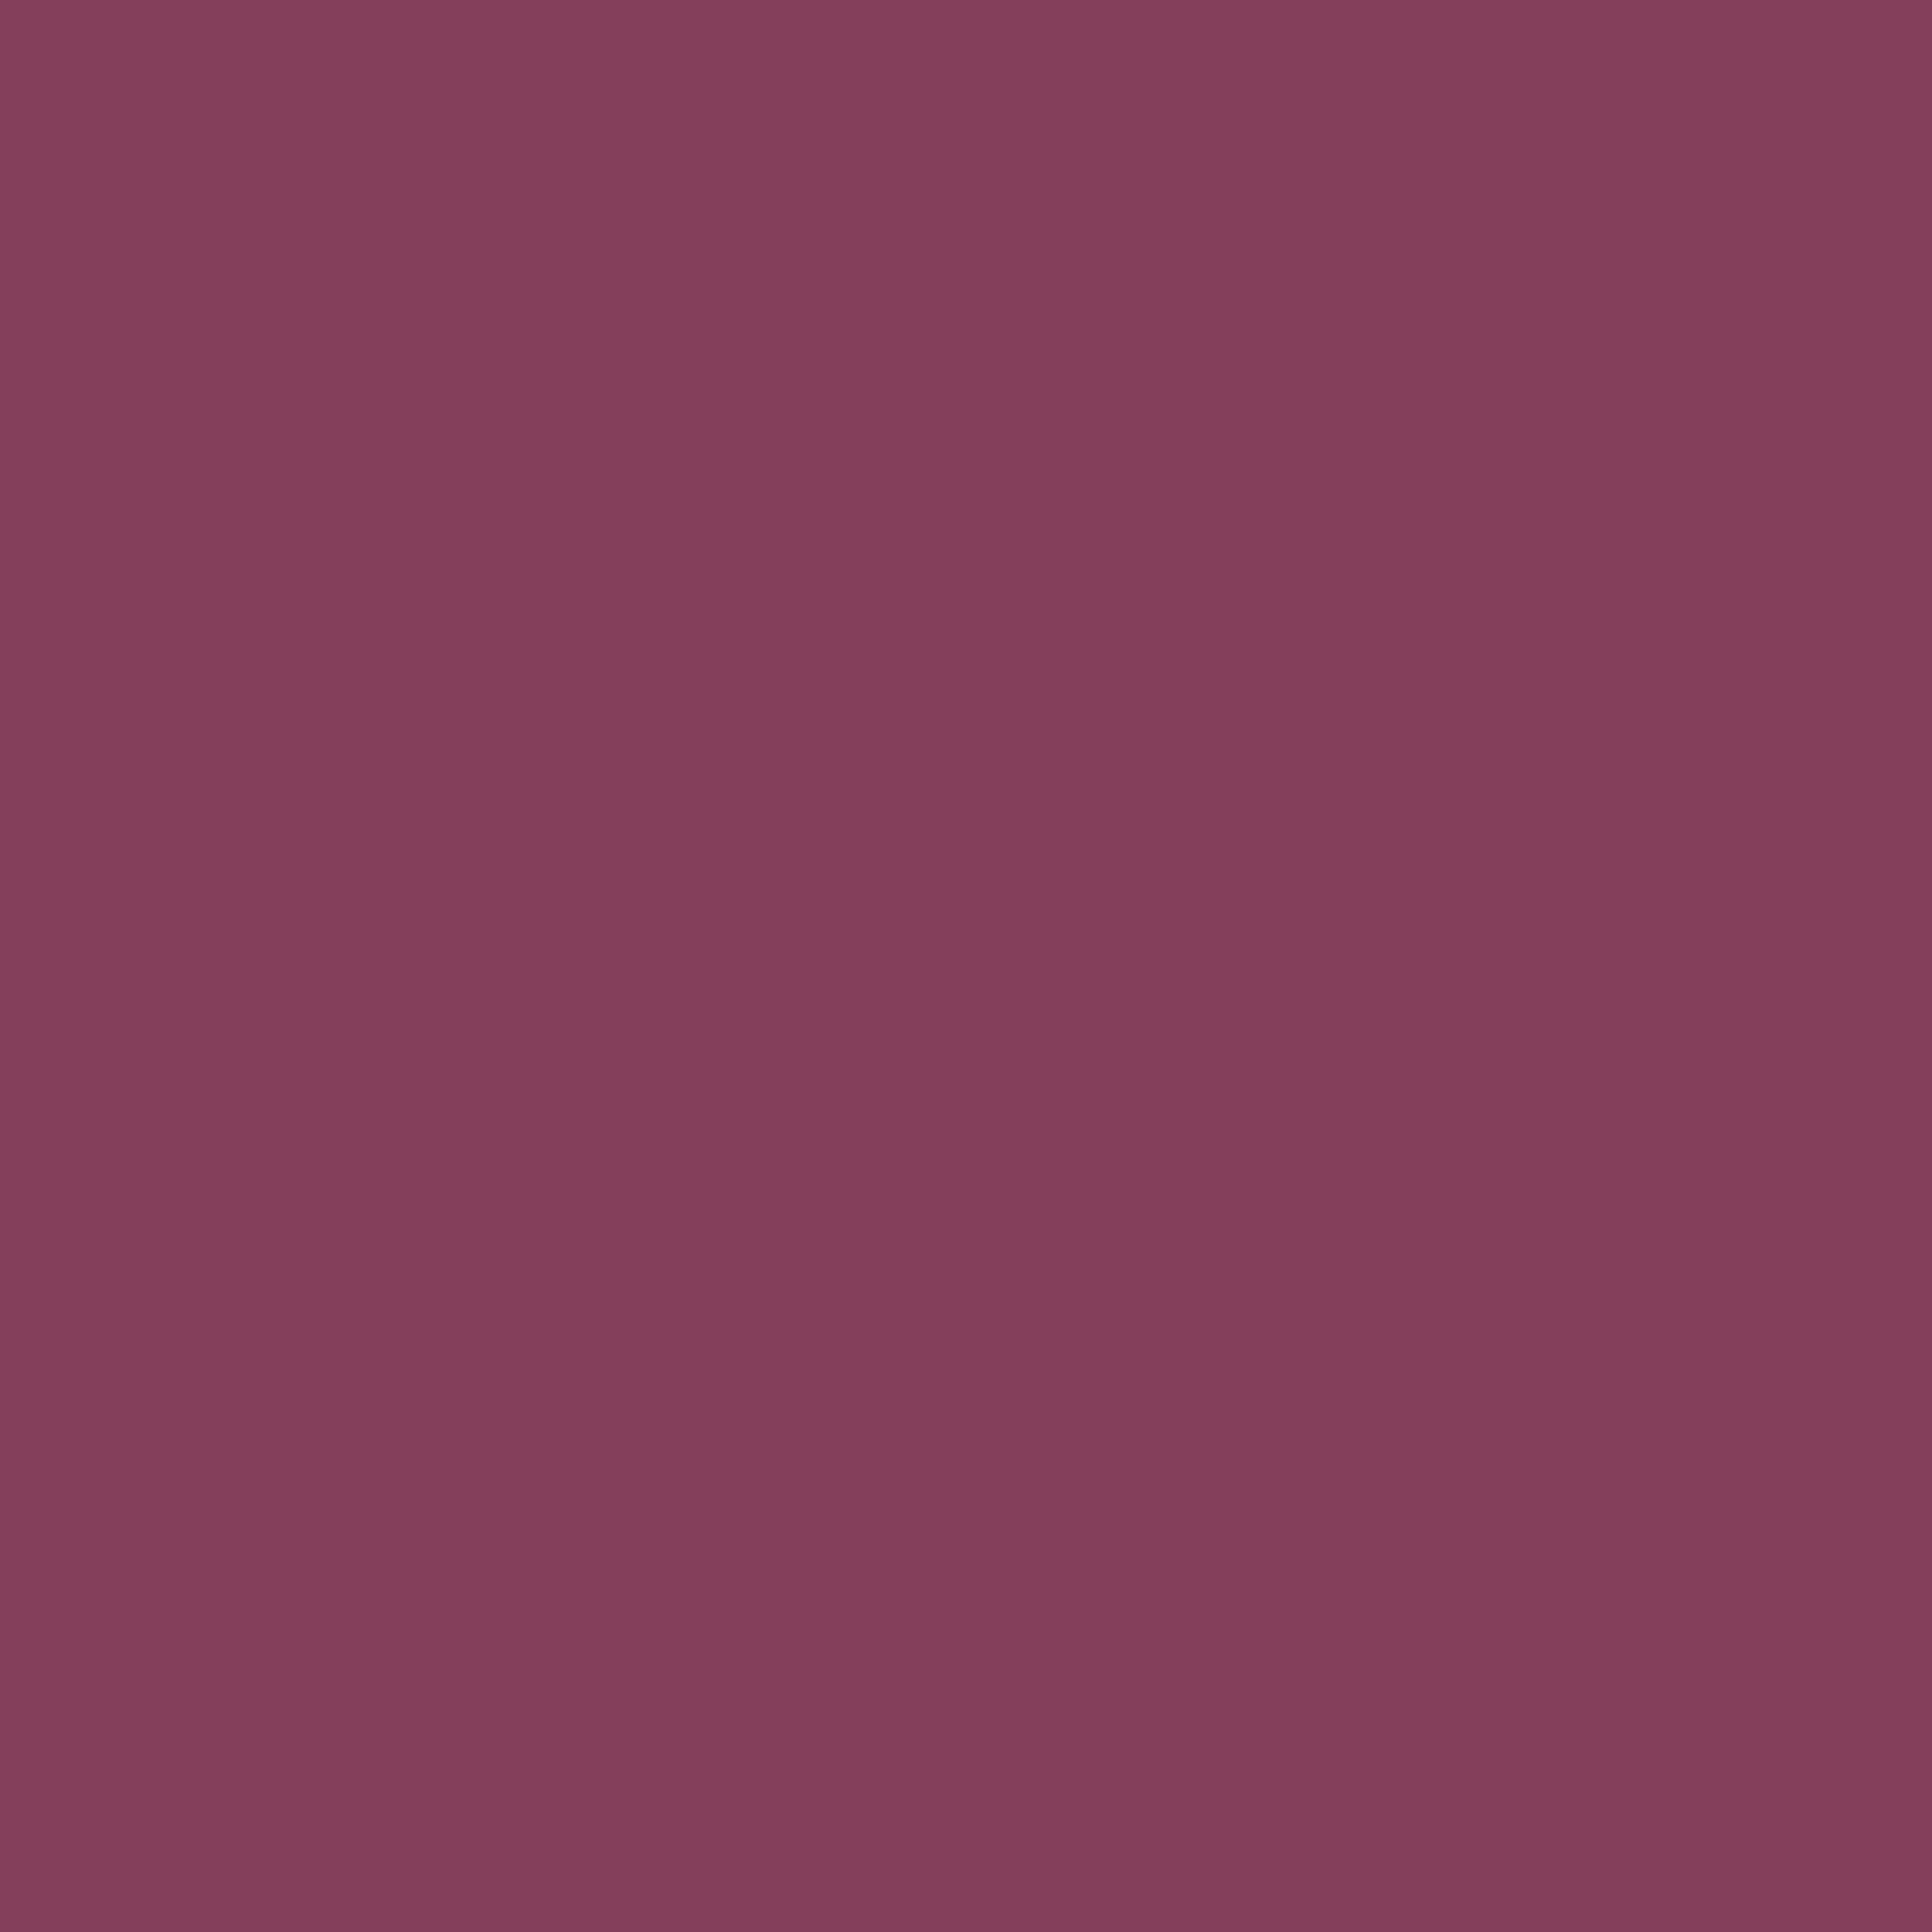 2732x2732 Deep Ruby Solid Color Background